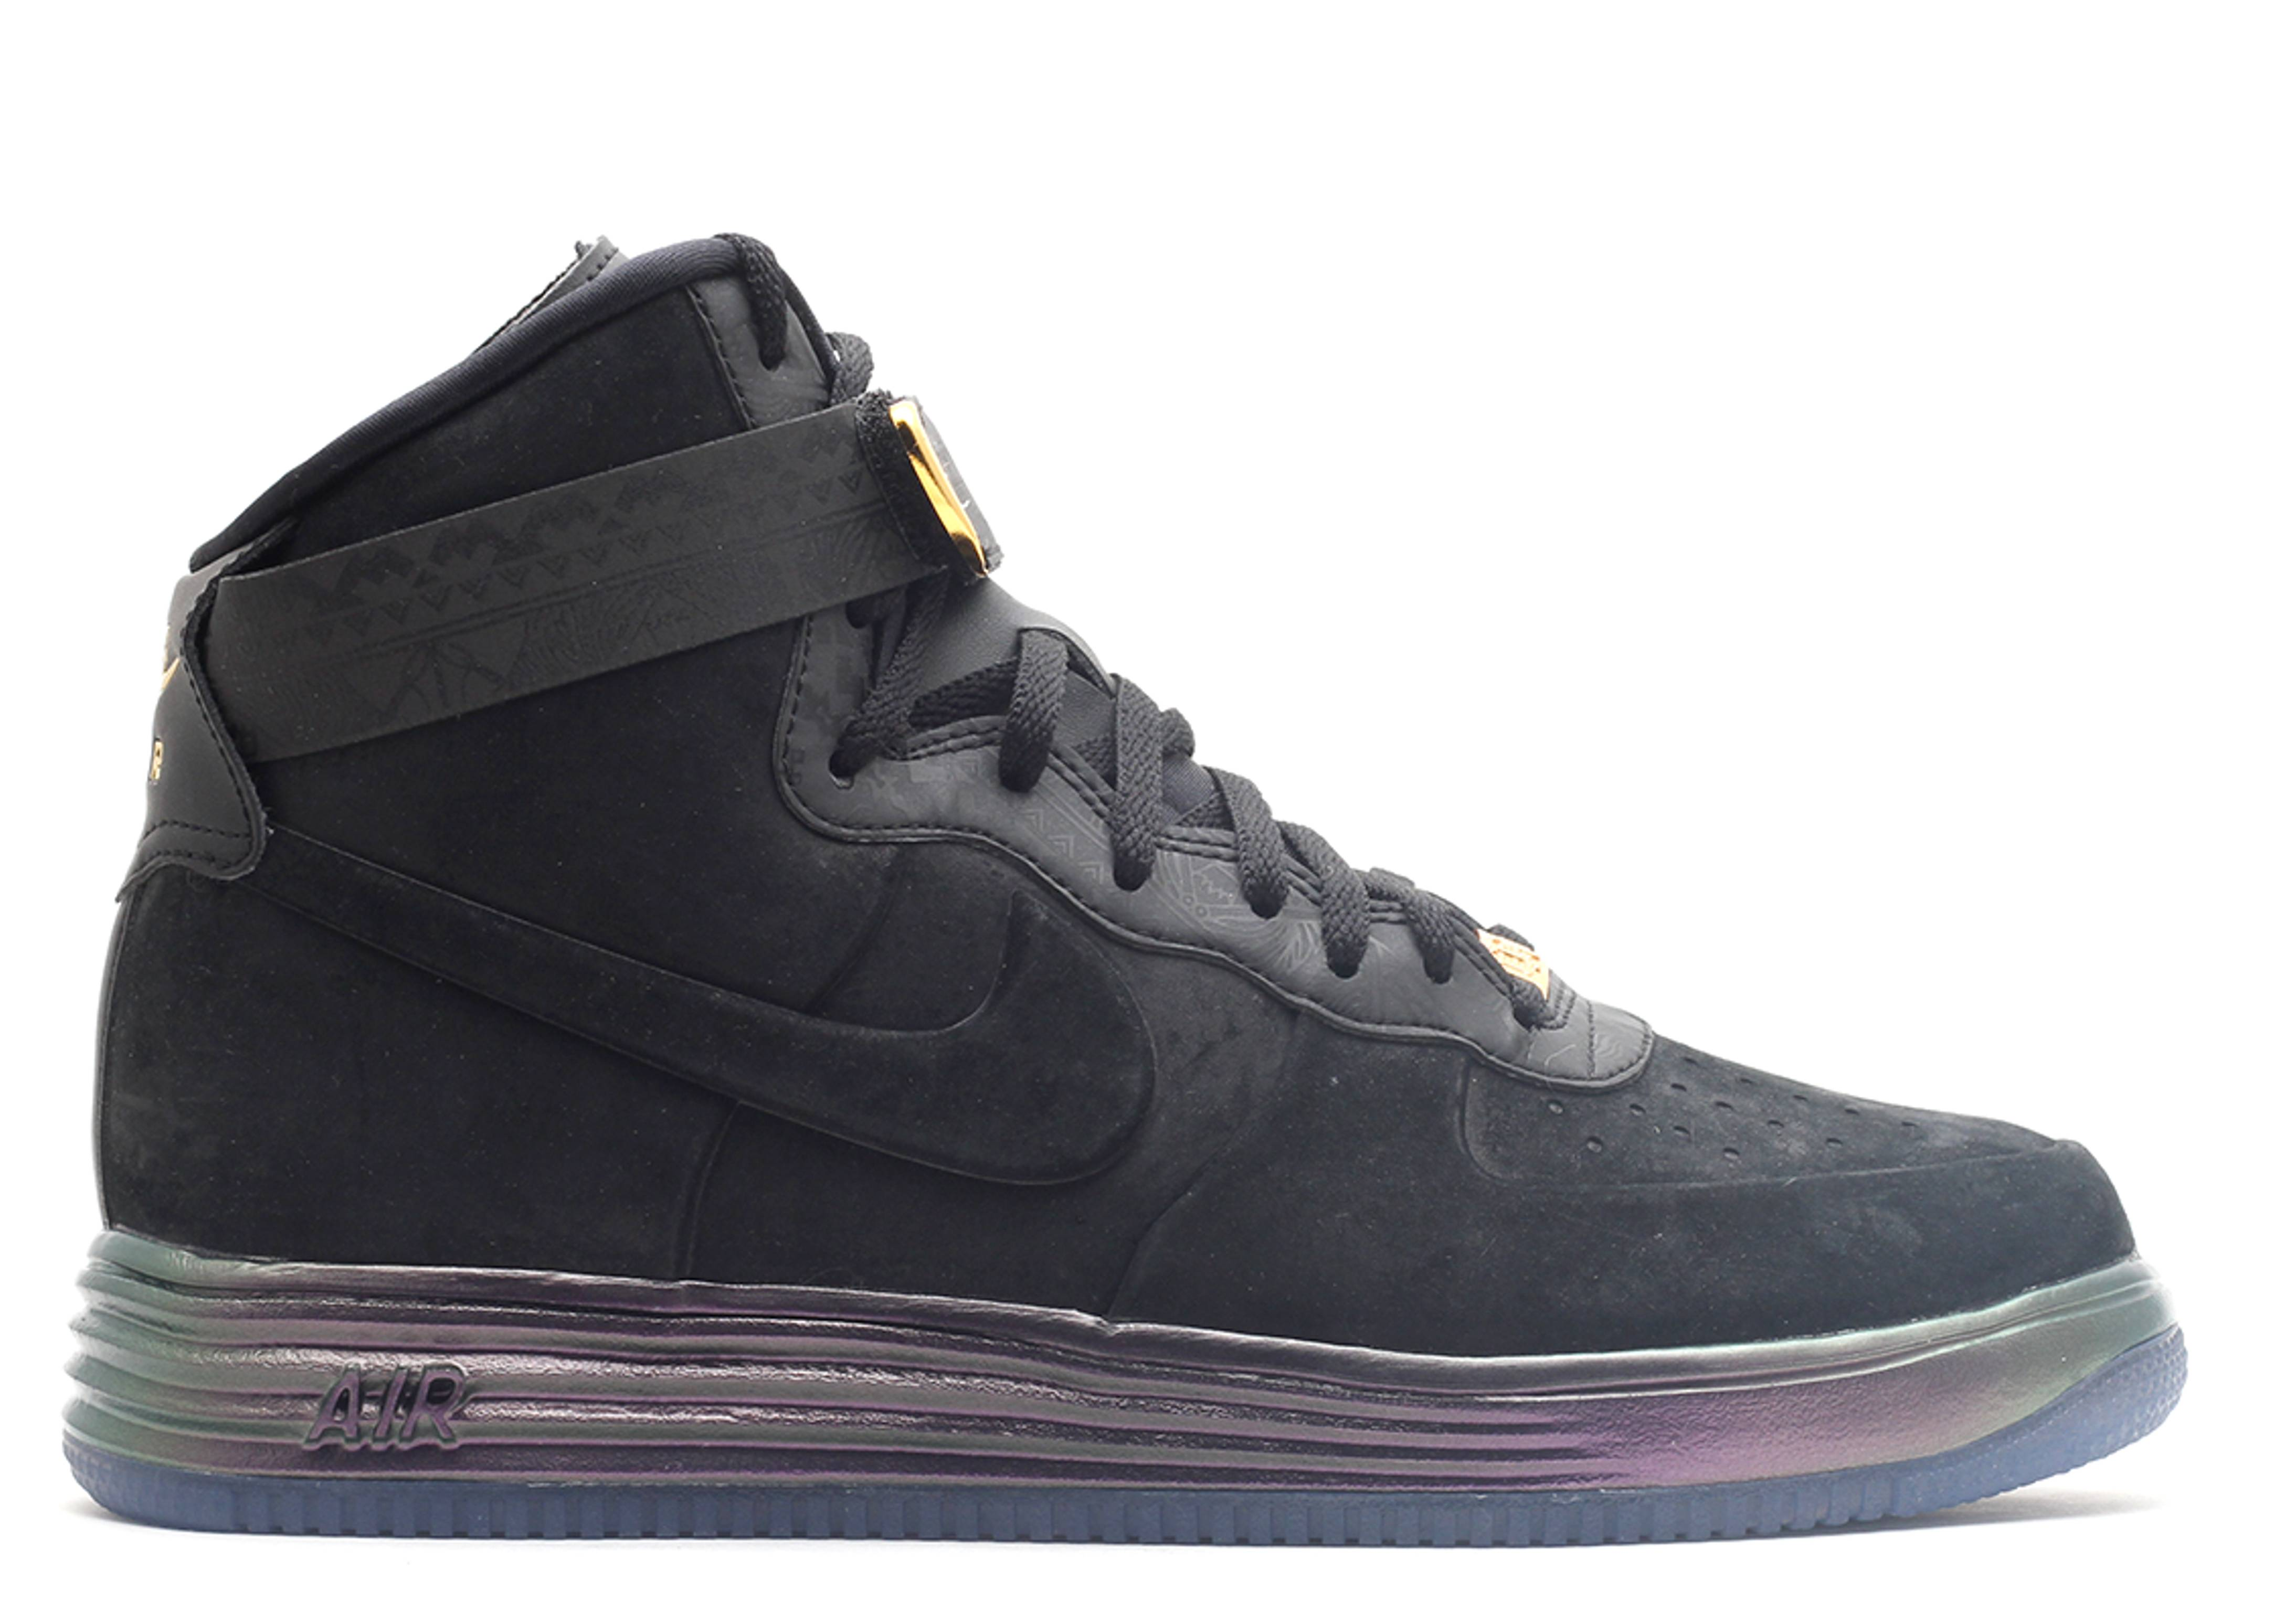 huge selection of a36f1 bbf45 Lunar Force 1 Lux Bhm Qs